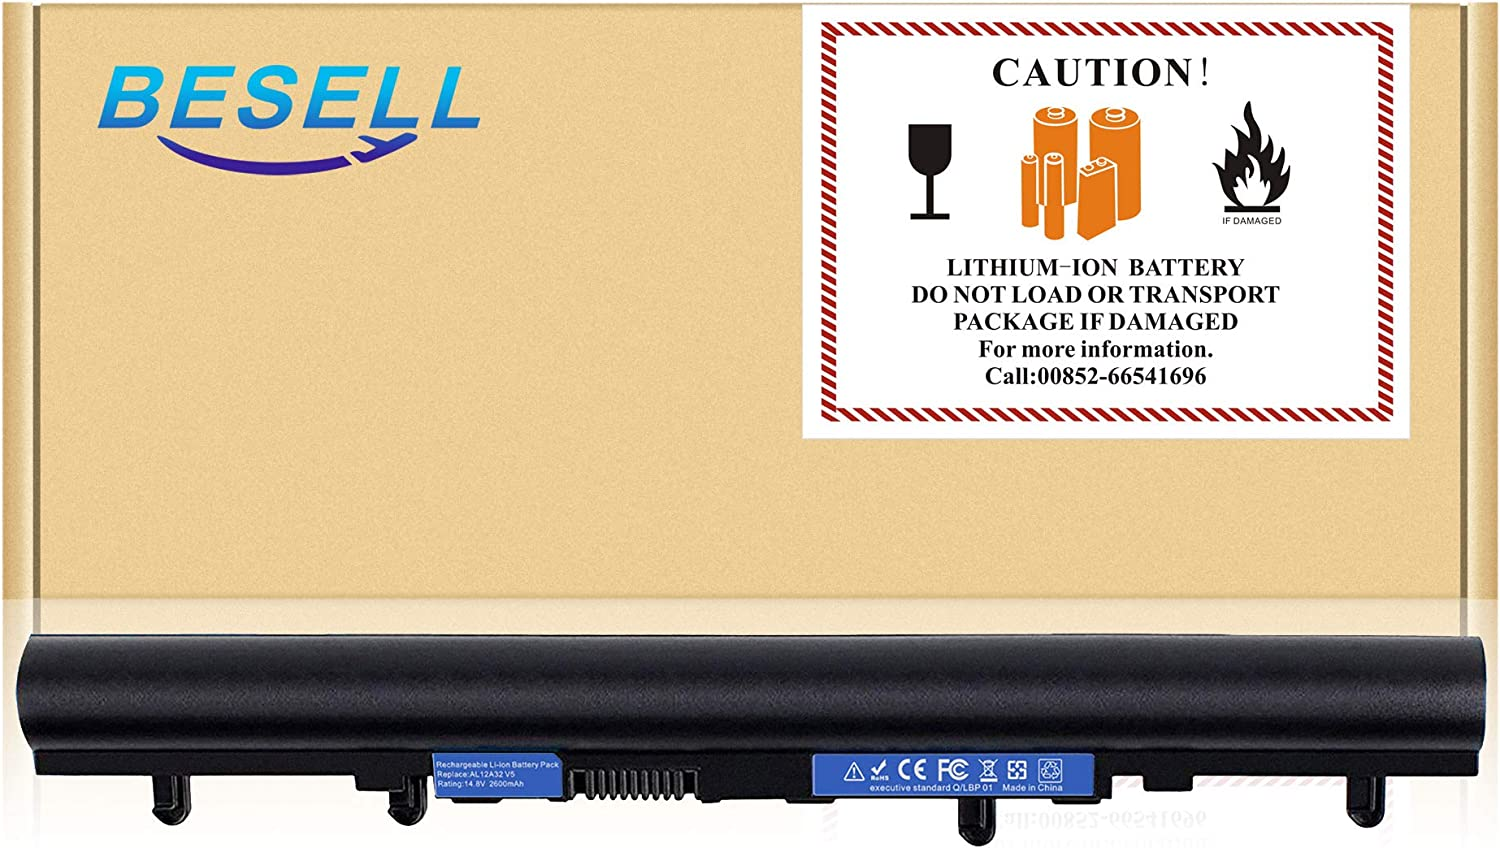 BE·SELL AL12A32 AL12A72 Battery for Acer Aspire V5 Touch V5-551G V5-431 V5-531 V5-551 V5-571 V5-471G V5-571-6726 V5-571-6889 V5-571-6869 V5-571P-6407 V5-571P-6464 E1-510P E1-522 E1-532 E1-572 E1-470P